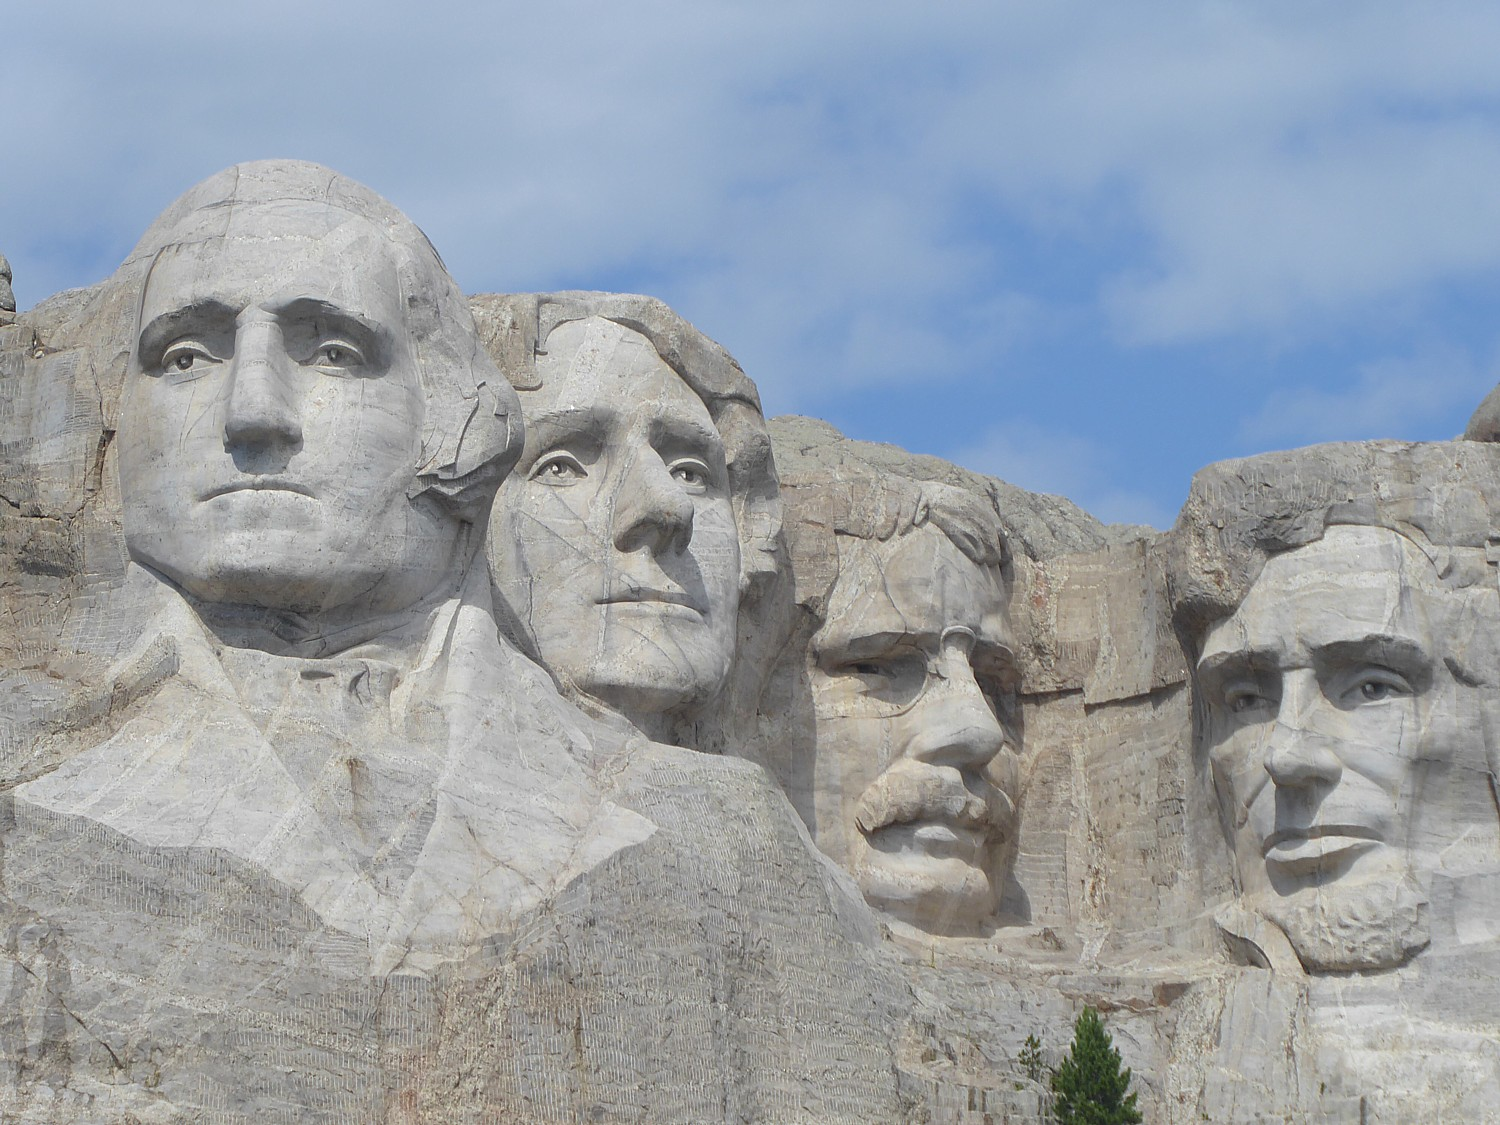 Going places: Mount Rushmore, finale to six-day Wilderness Voyageurs South  Dakota 'Badlands & Mickelson Trail' bike tour - The Island Now